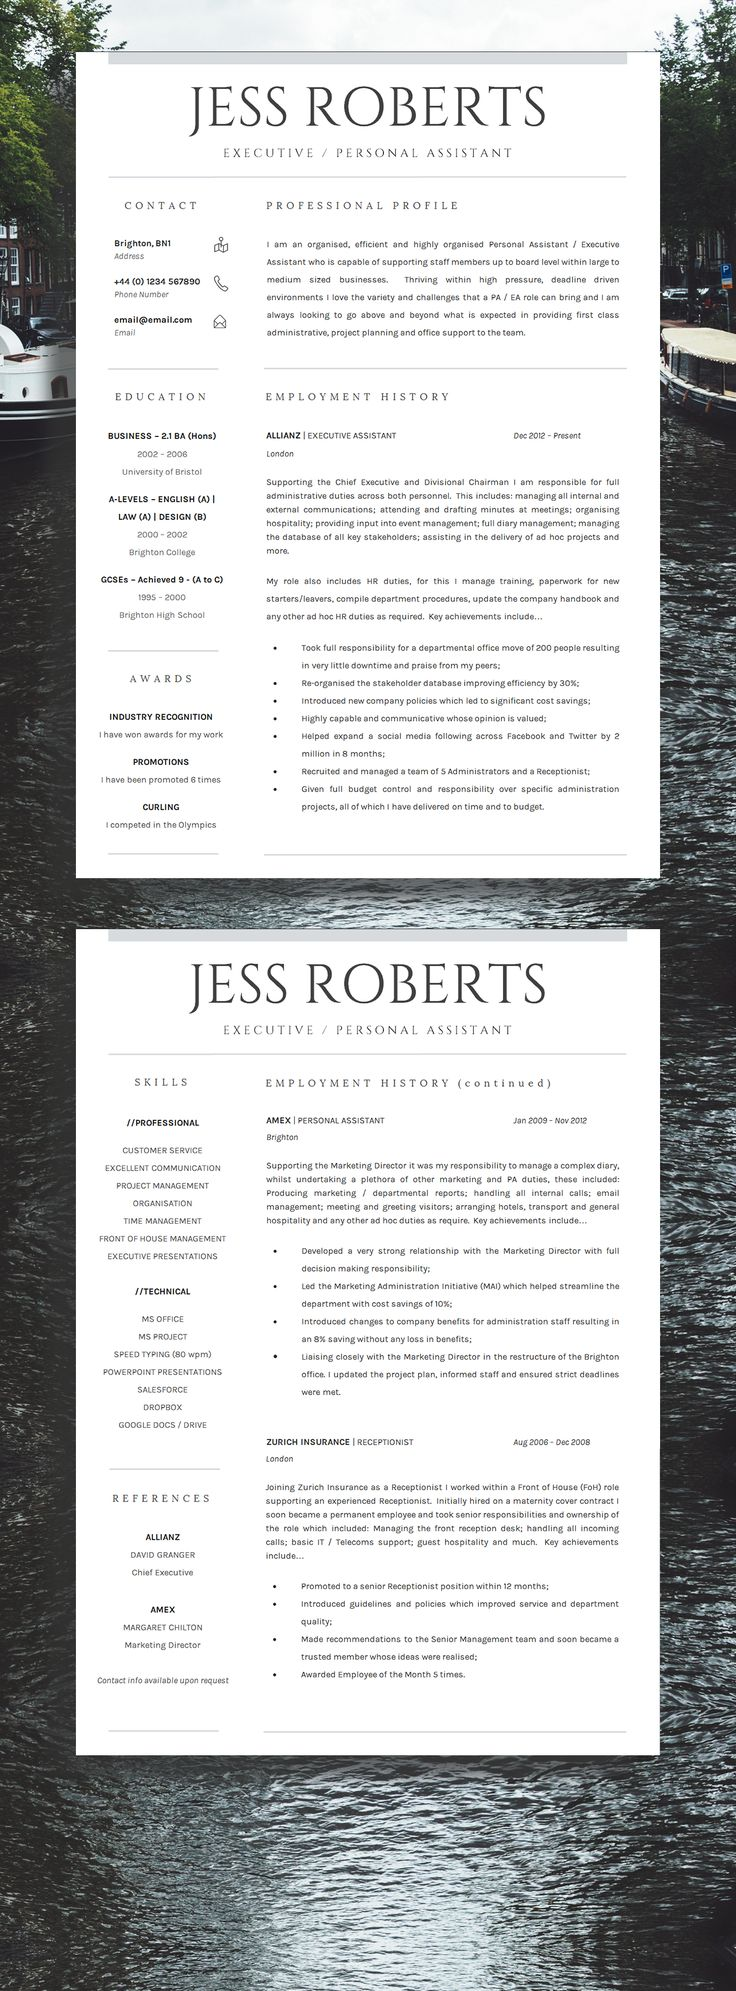 Functional Resume Template Microsoft%0A Cool Resumes  Sometimes the most striking resumes are the most simple